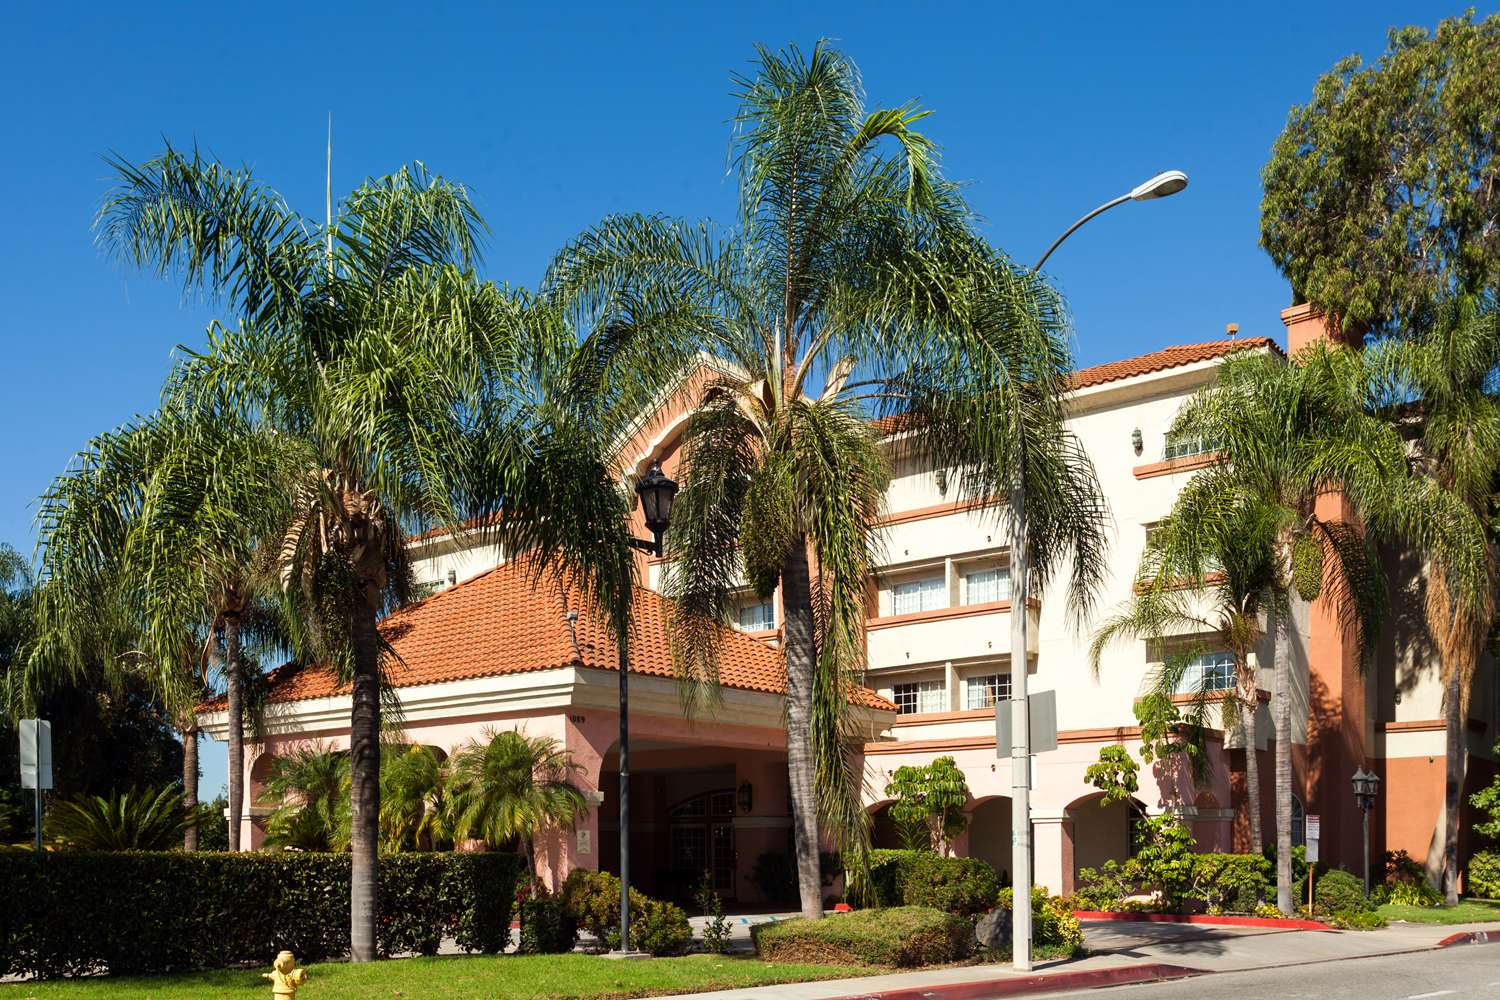 Ramada Inn & Suites South El Monte